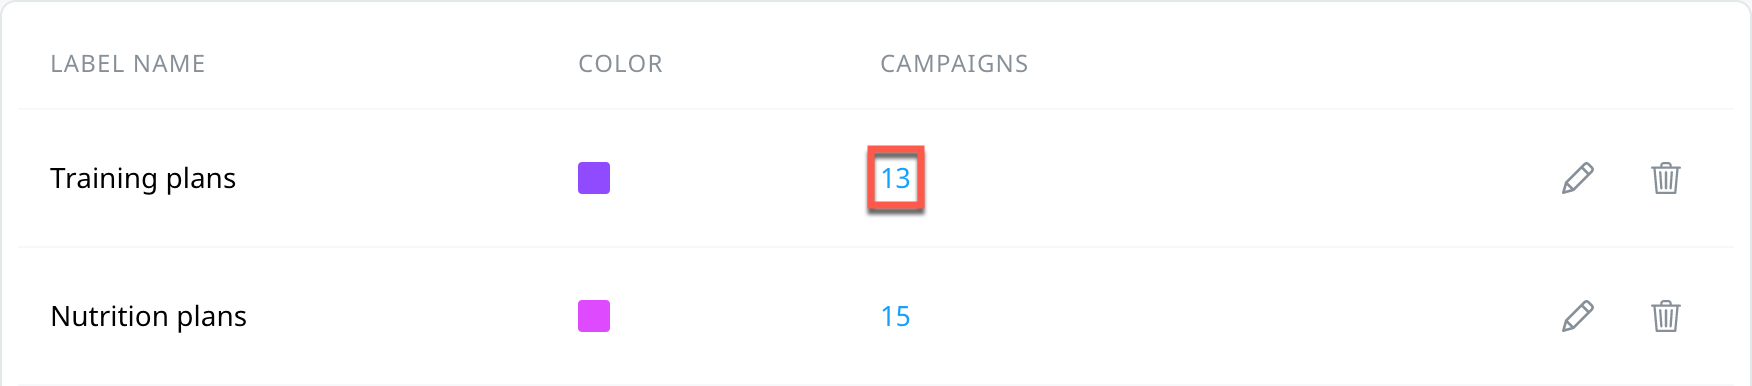 Count and quick link to view campaigns associated with a specific tag